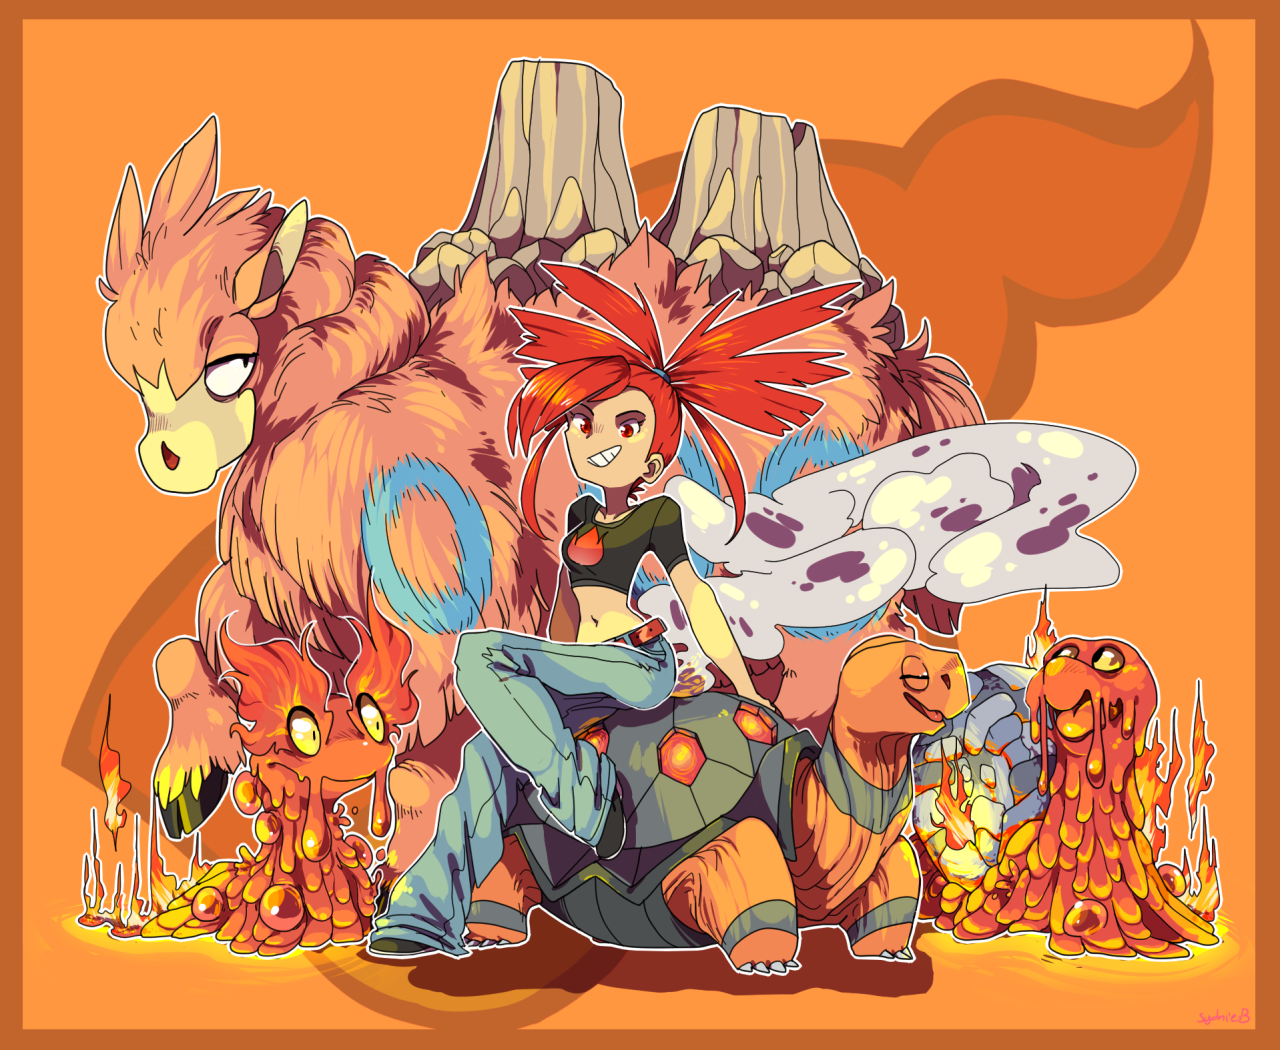 Flannery and her team Slugma, Magcargo, Torkoal, and